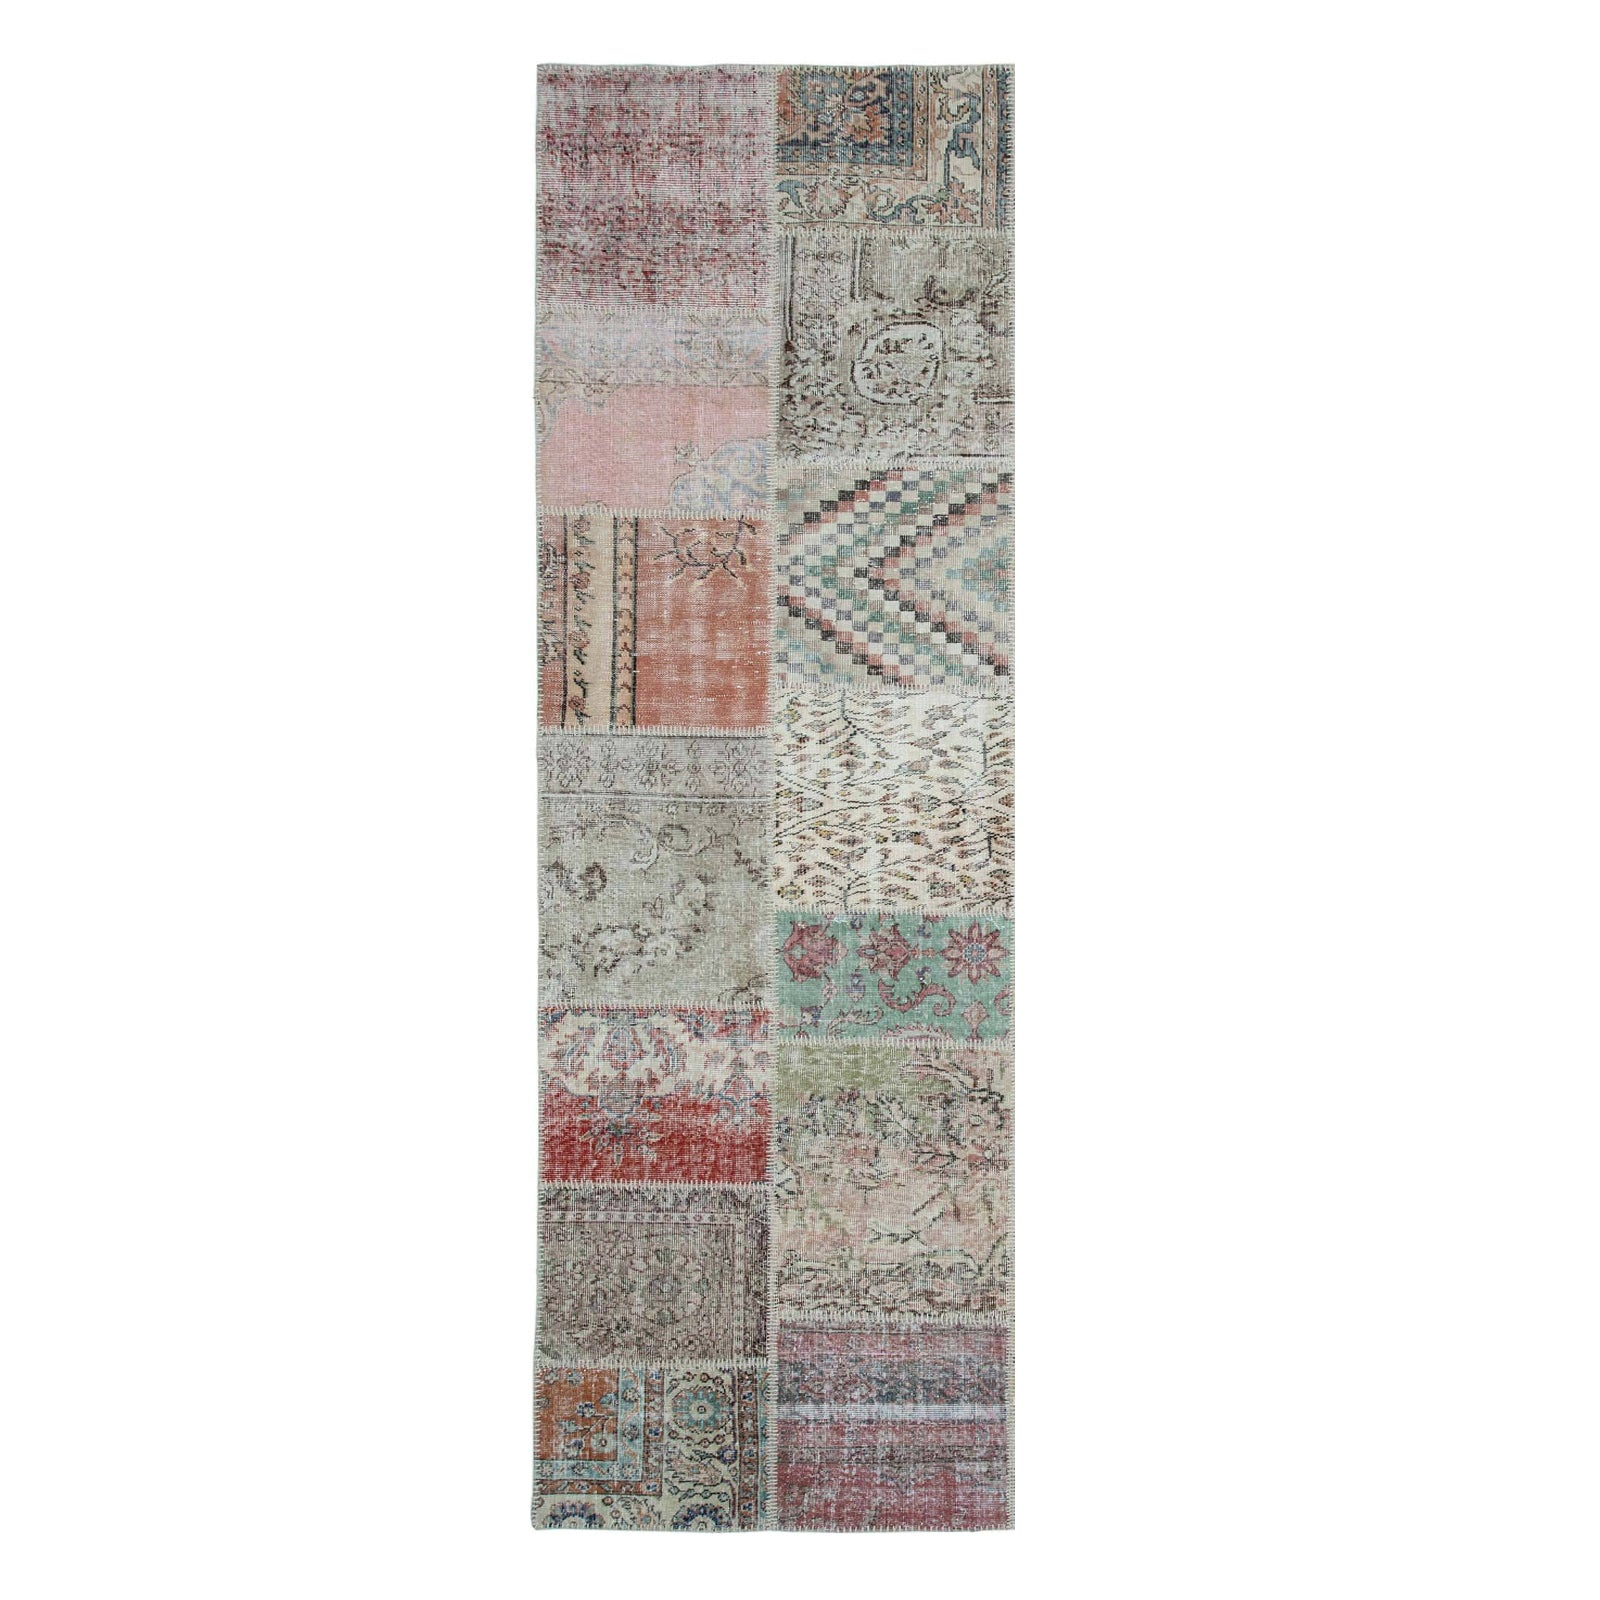 90x300 Cm HALI Bursa Handmade over dyed RUG  PW024-Long - ebarza